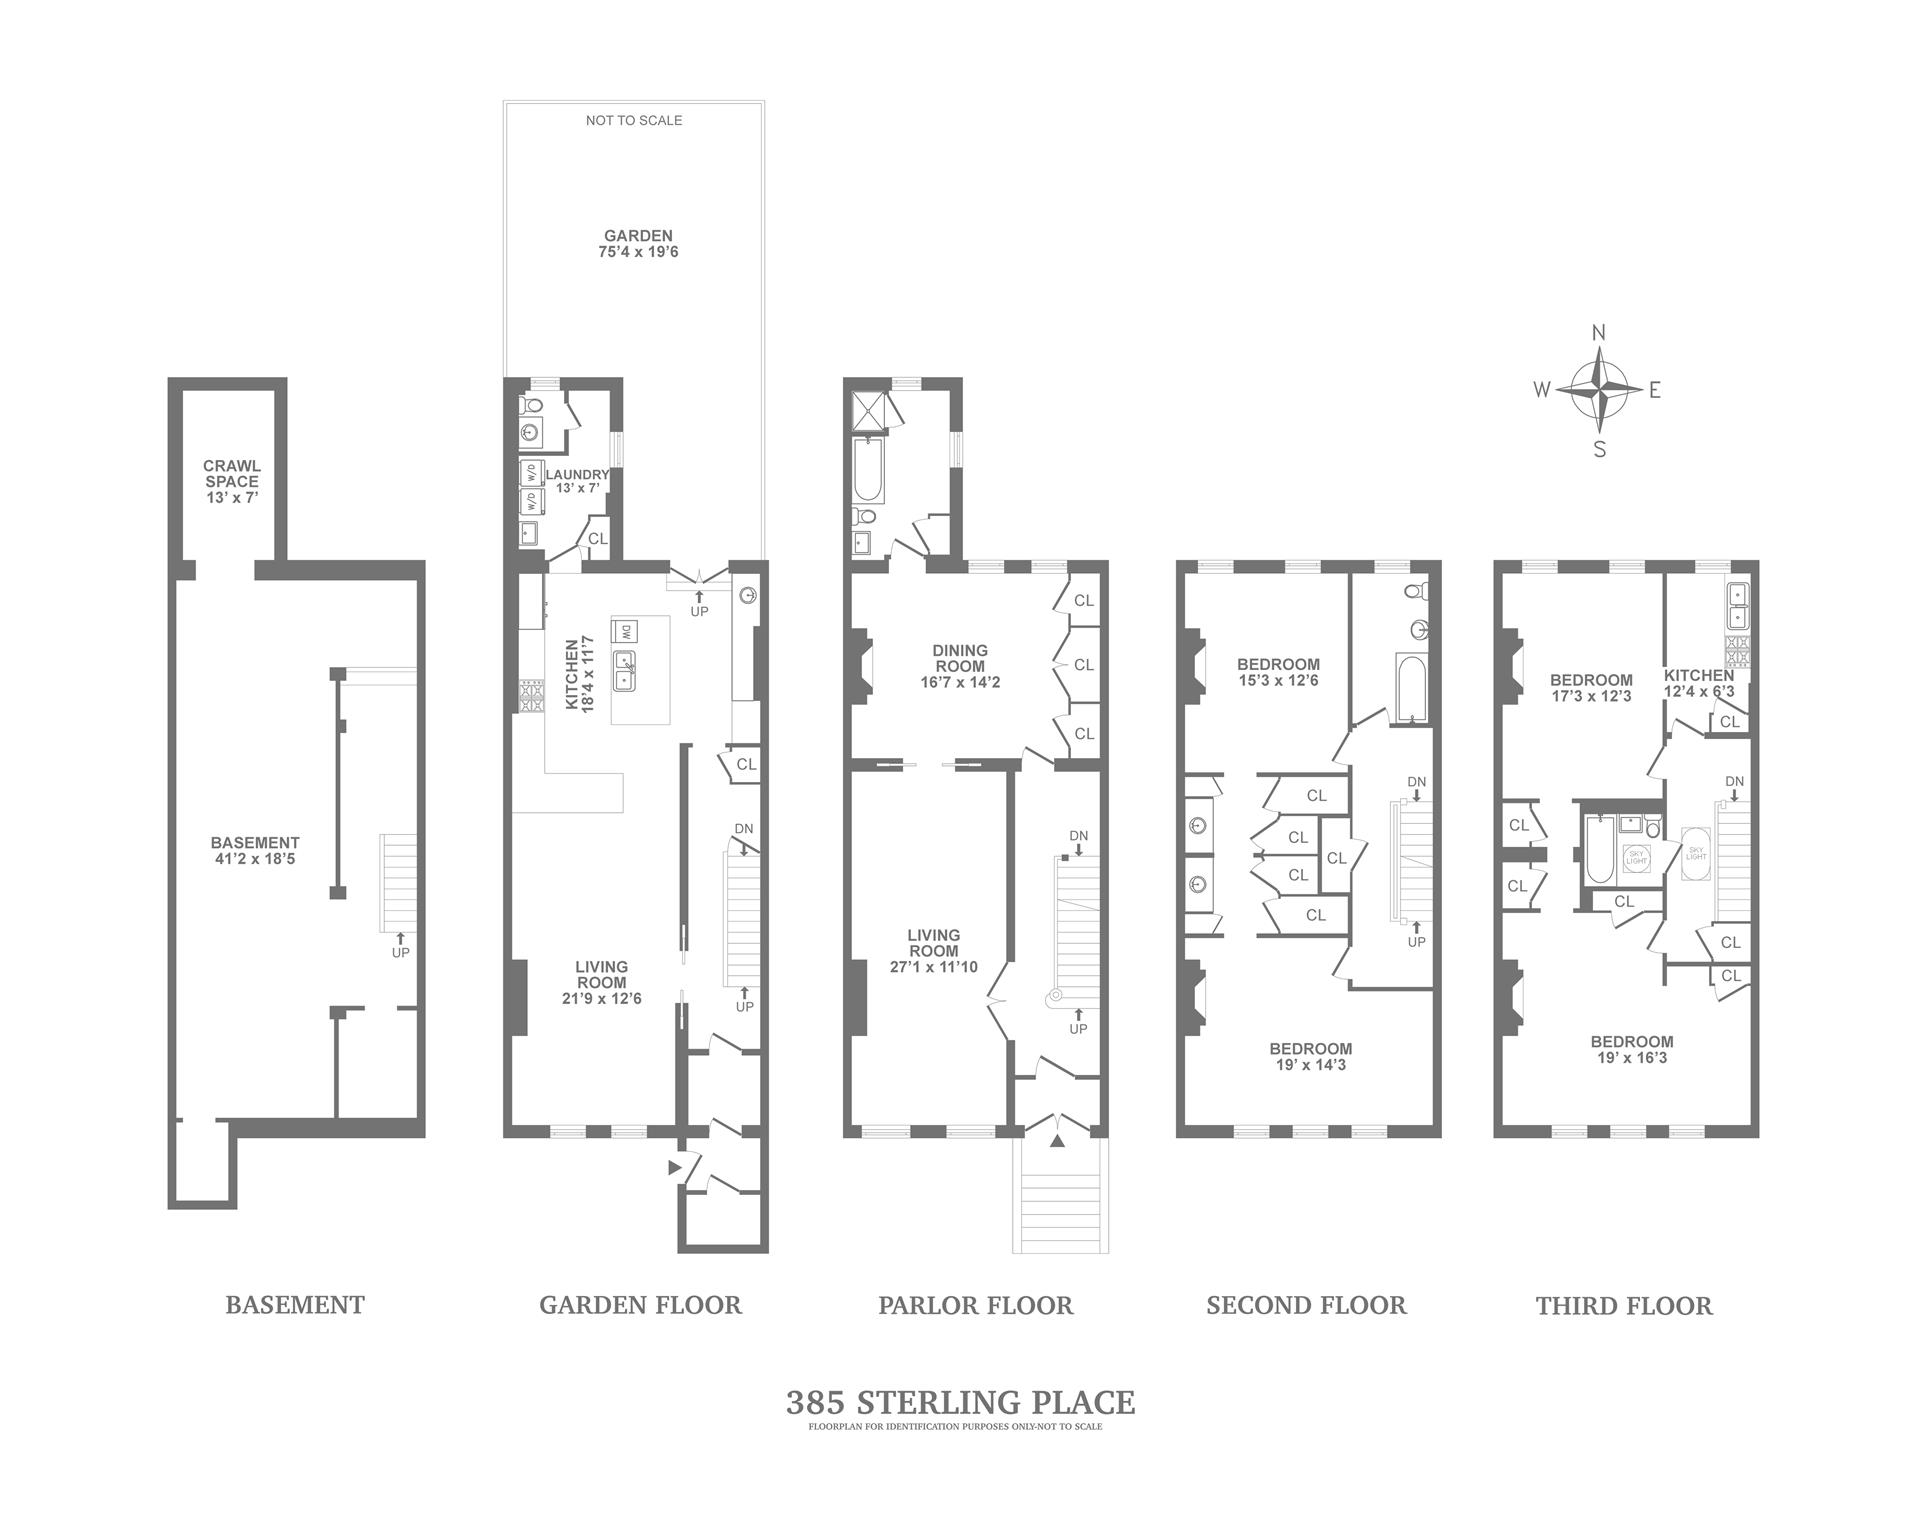 Floor plan of 385 Sterling Pl - Prospect Heights, New York